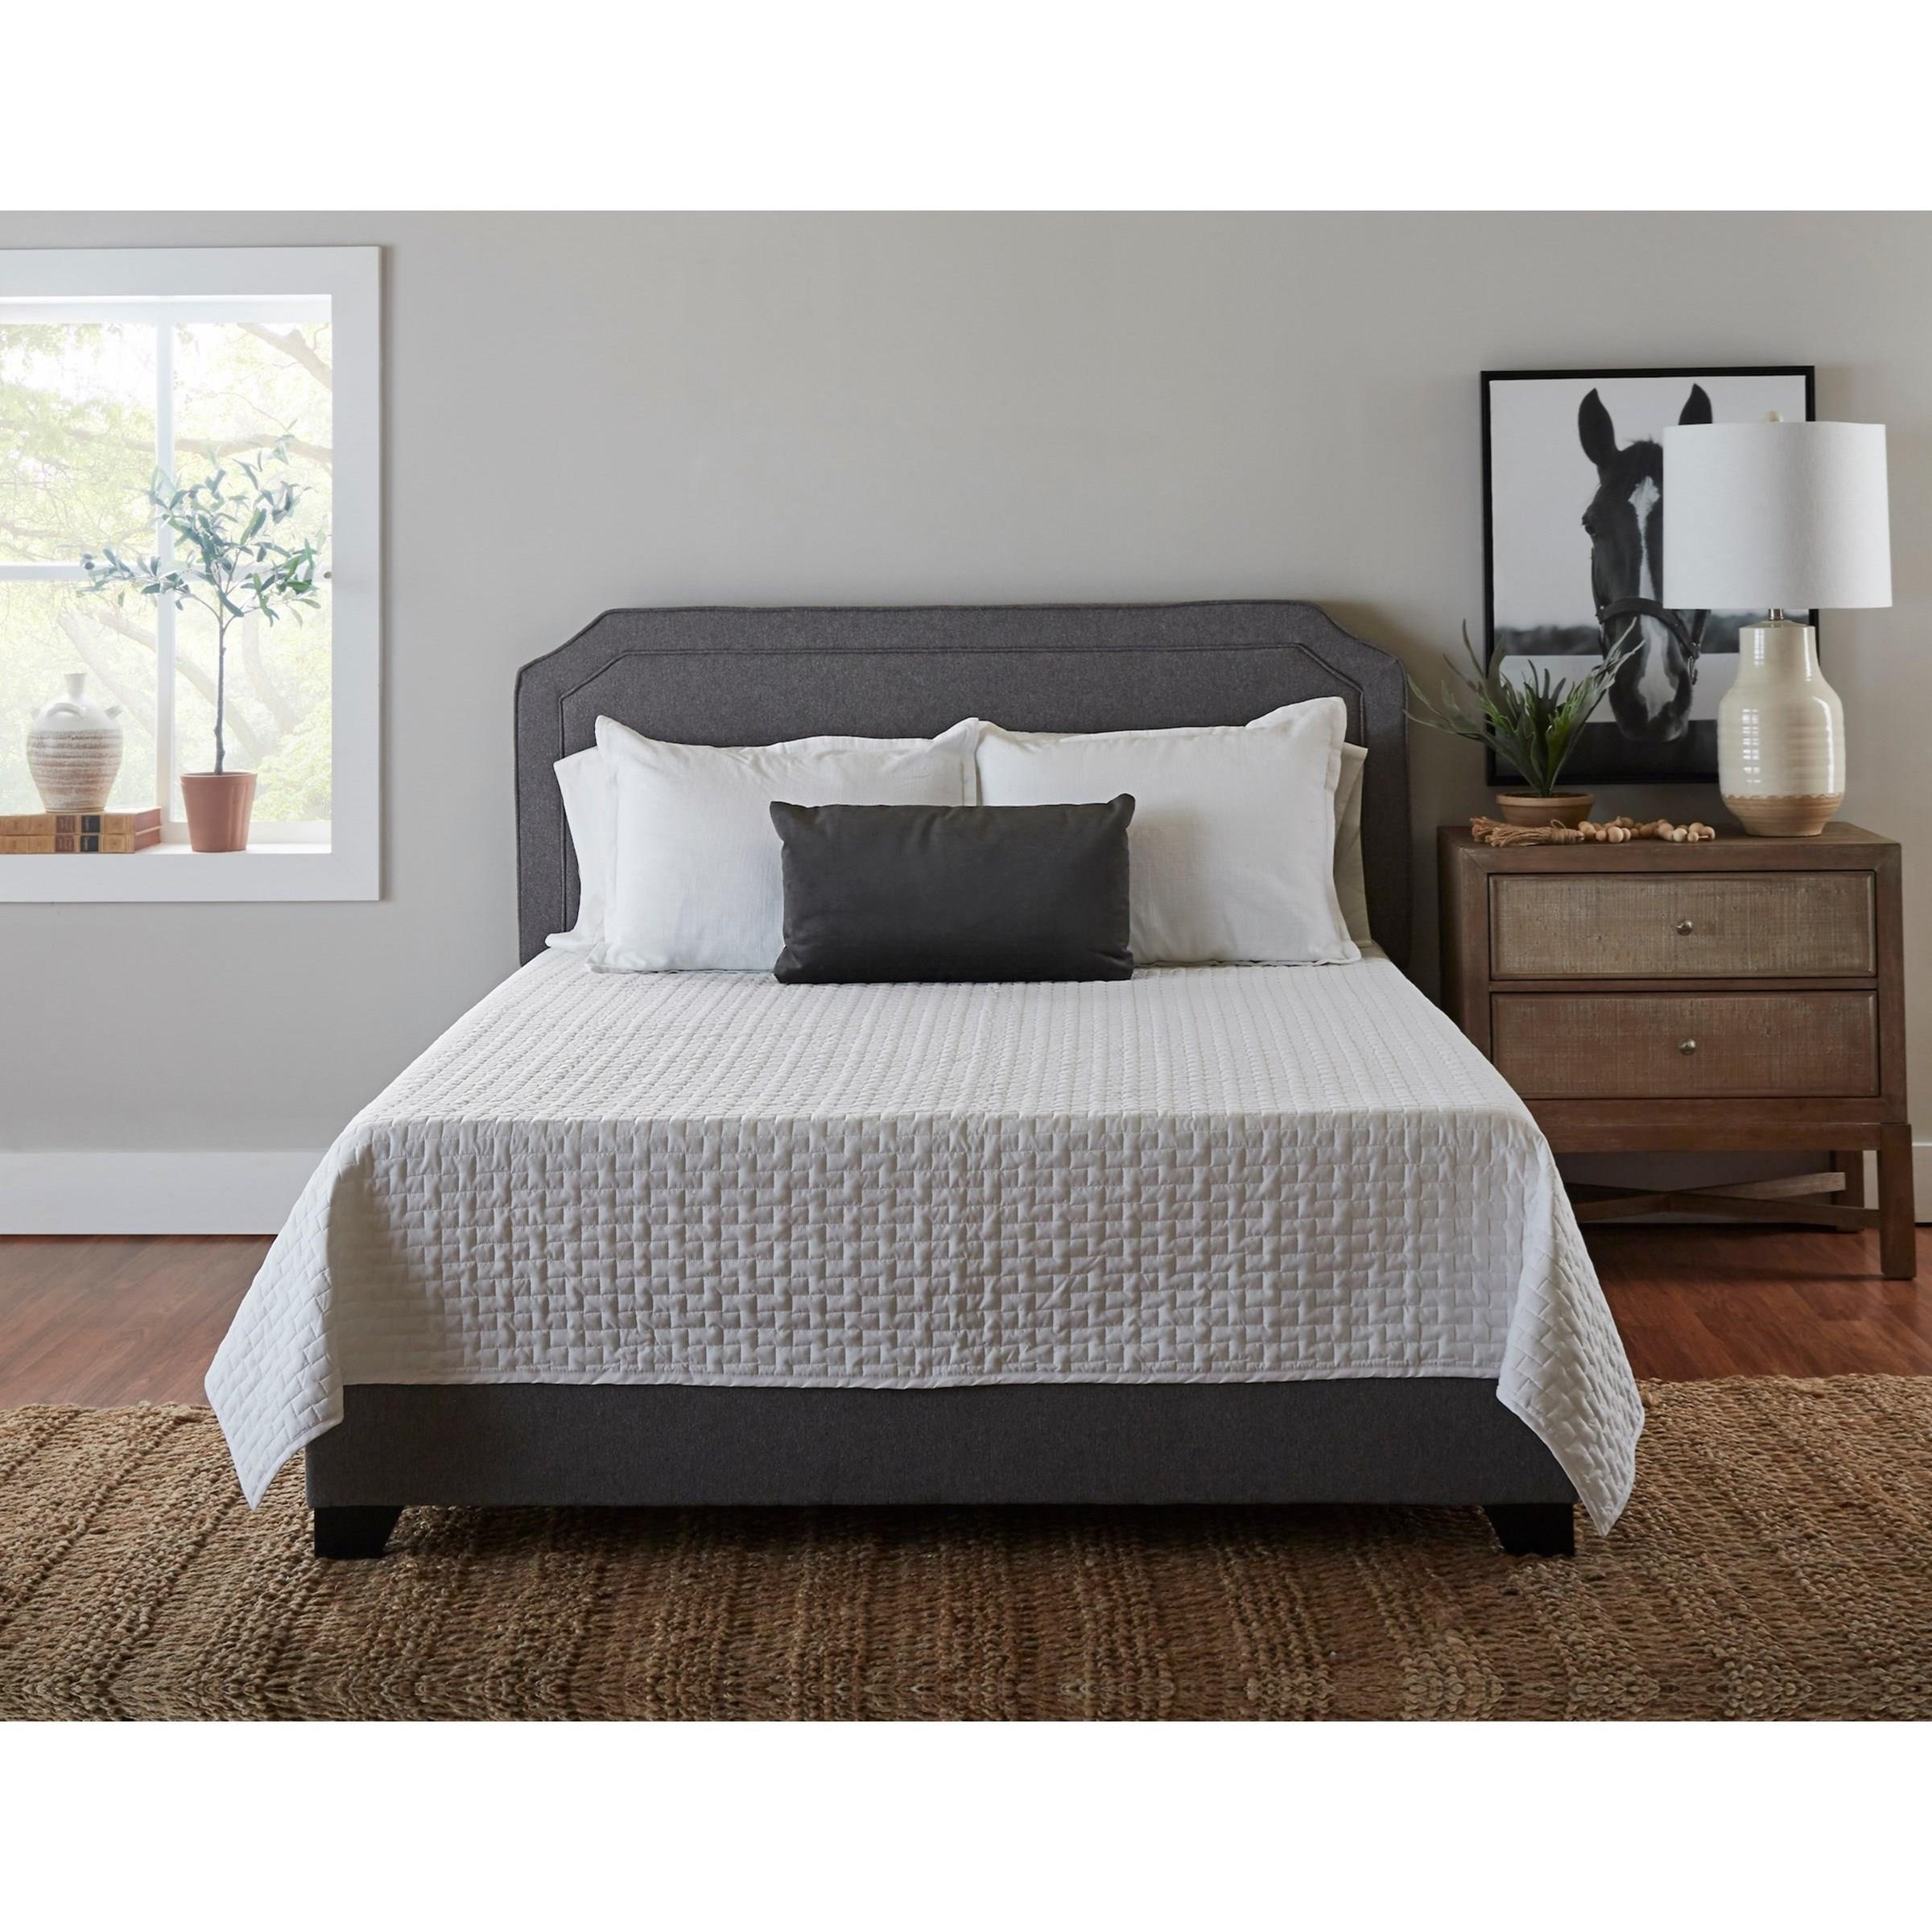 Possibilities - 294 King Upholstered Bed by Klaussner International at Catalog Outlet